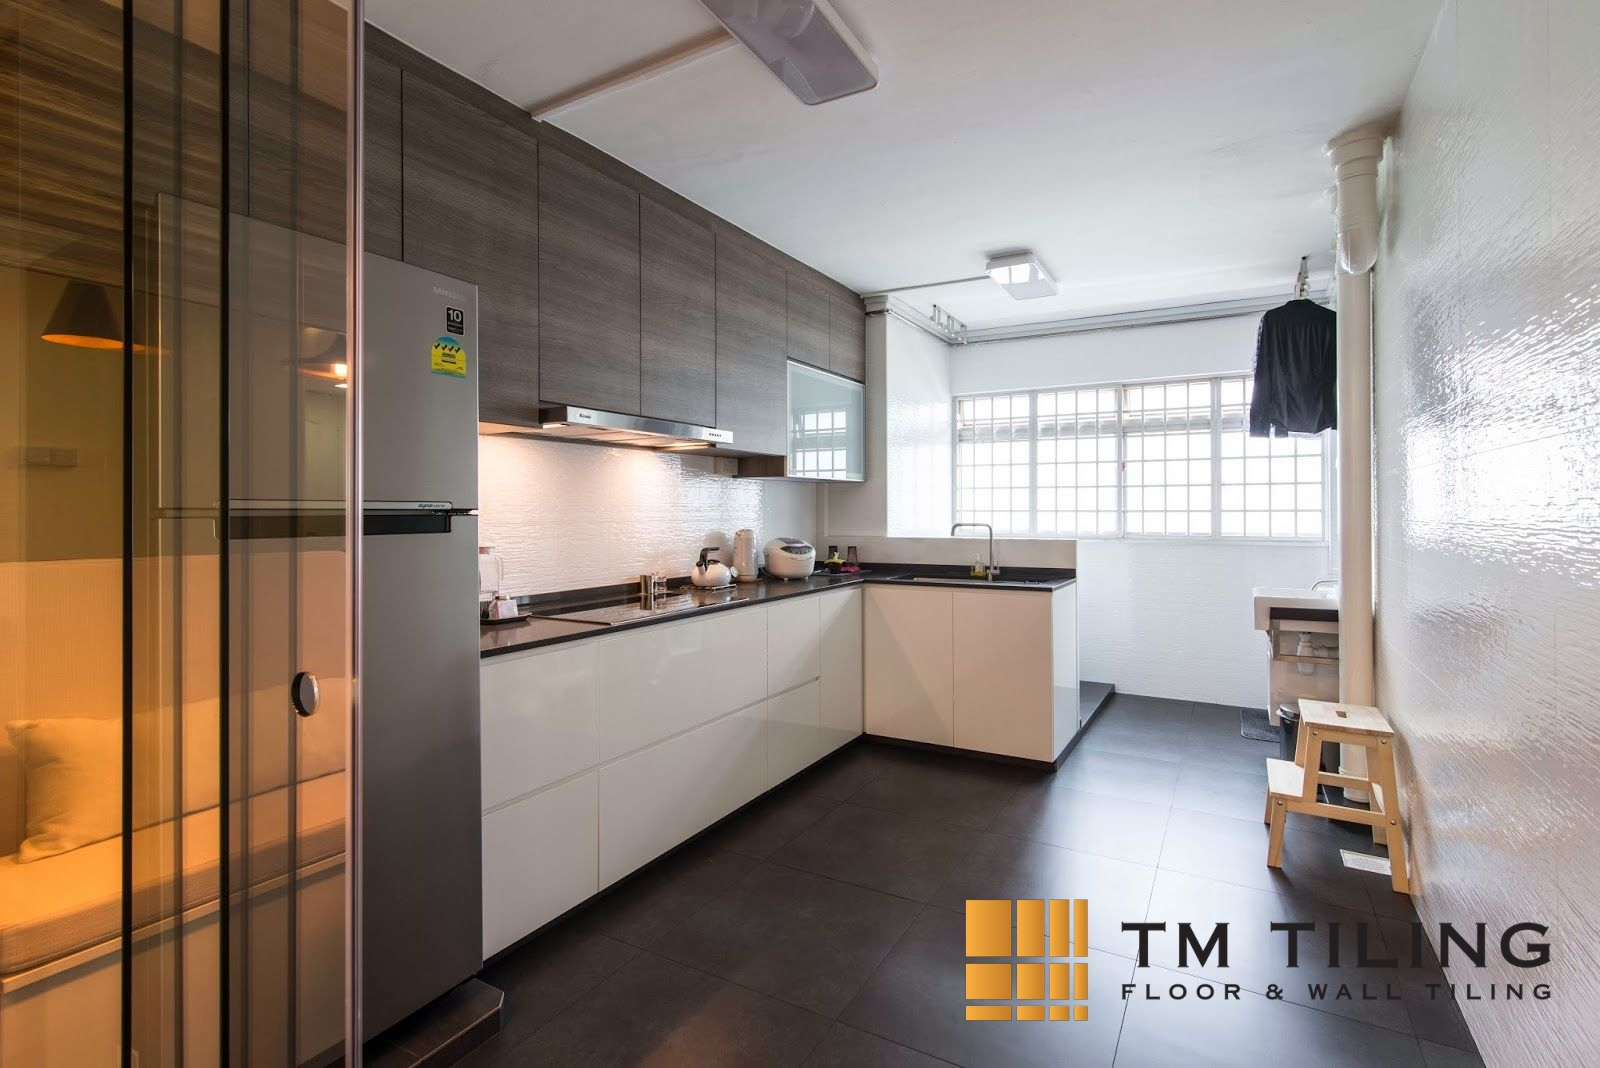 homogeneous-tiles-kitchen-tm-tiling-singapore_wm